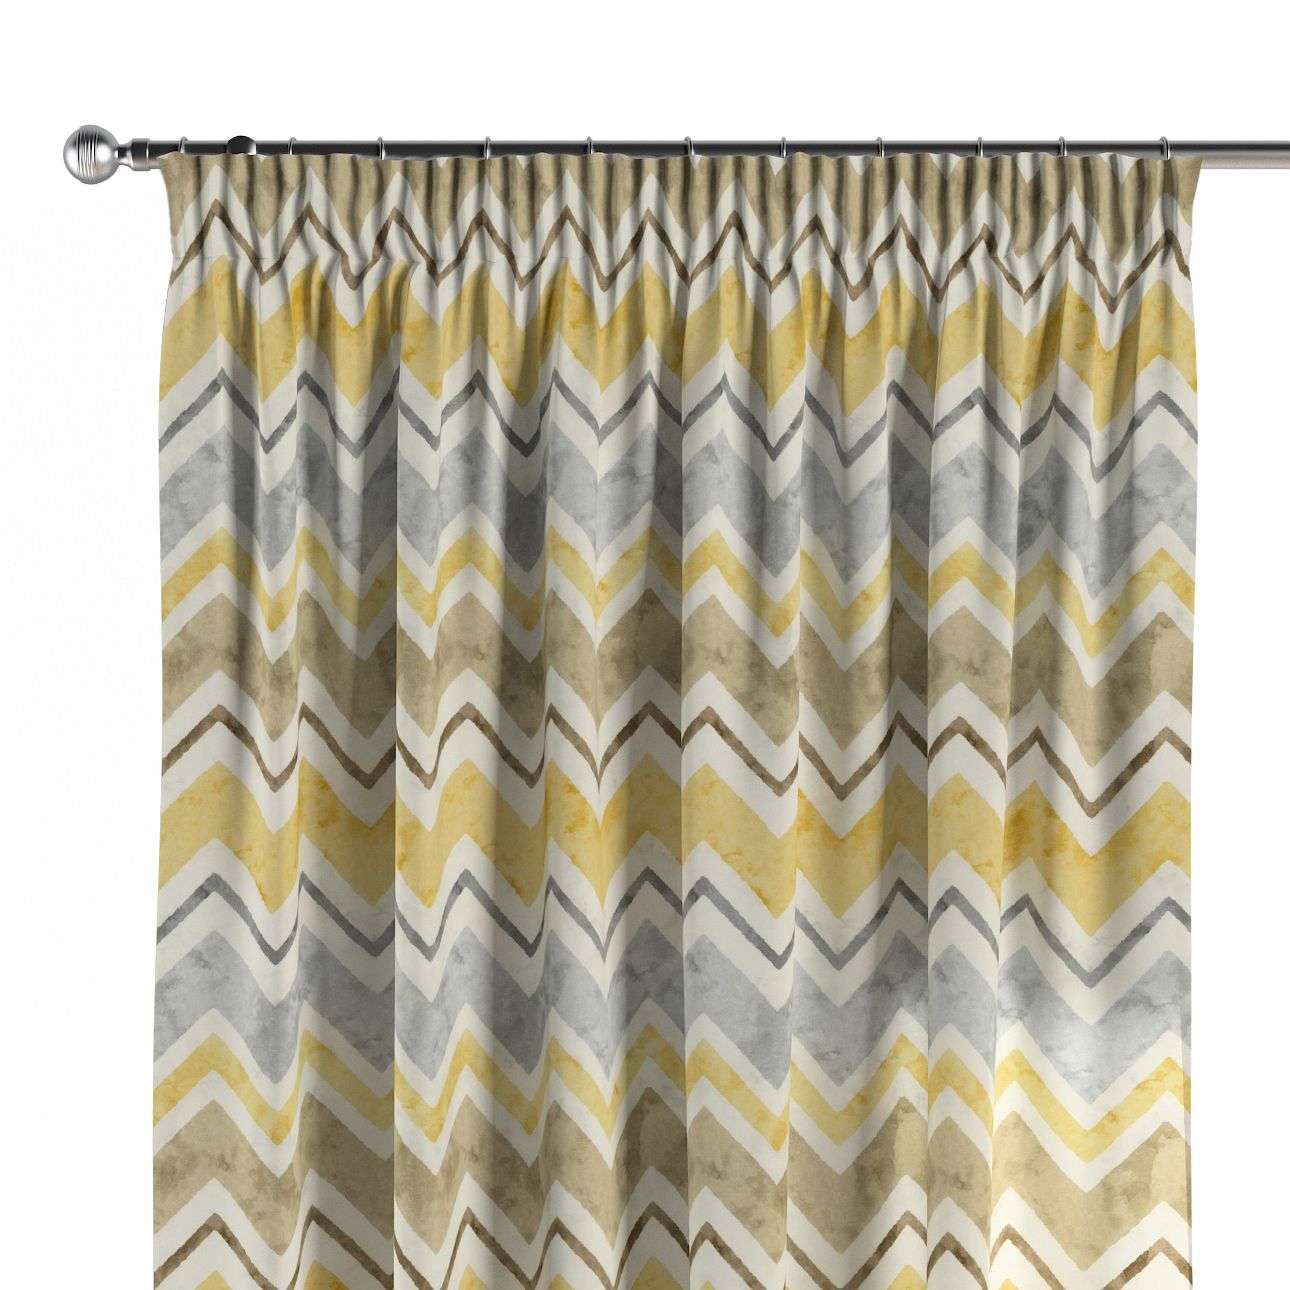 Pencil pleat curtains 130 x 260 cm (51 x 102 inch) in collection Acapulco, fabric: 141-39